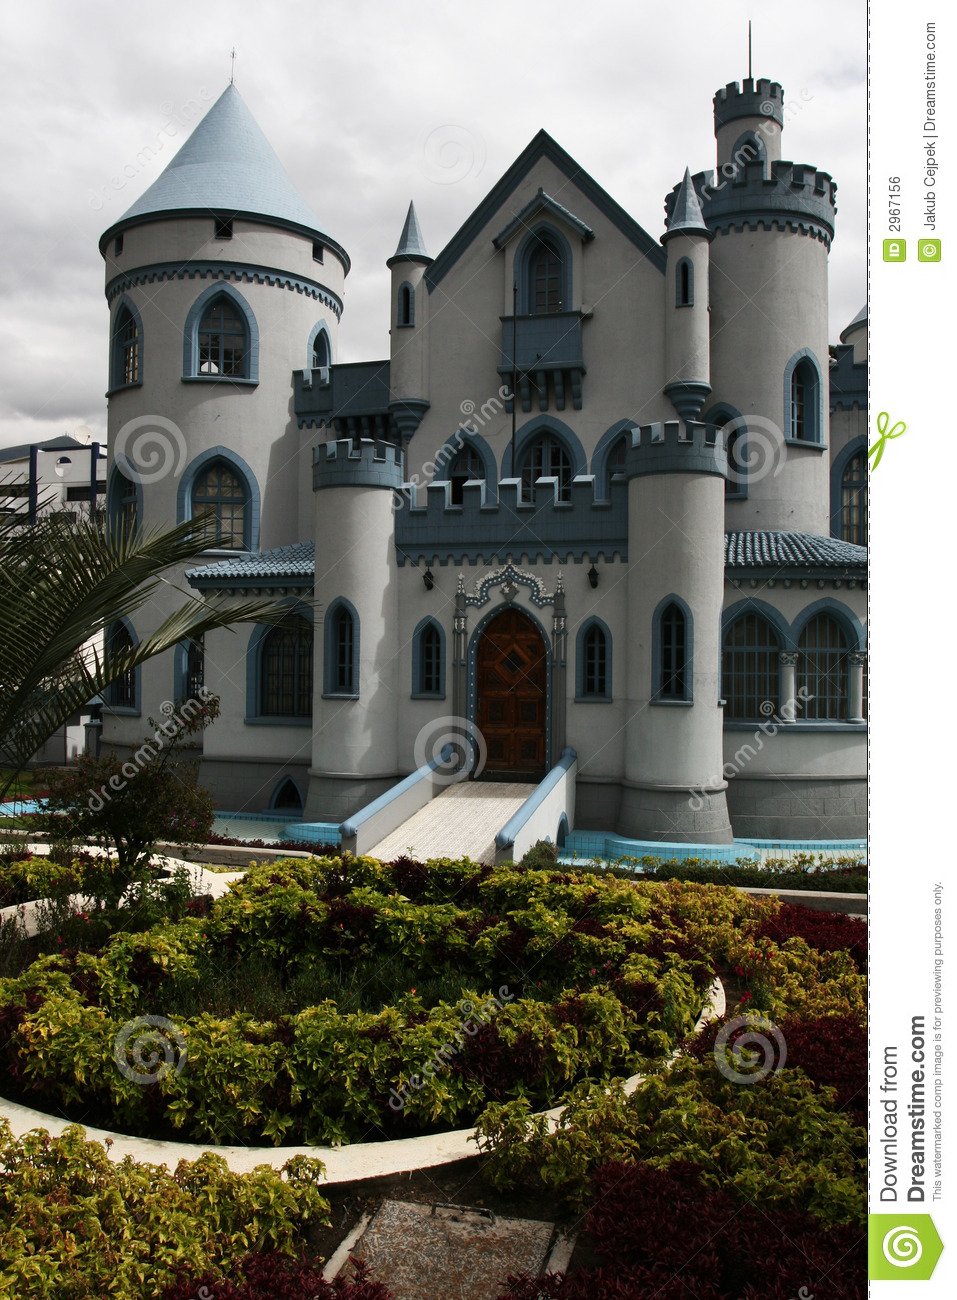 Brownstone house royalty free stock image image 2967156 for Small houses that look like castles